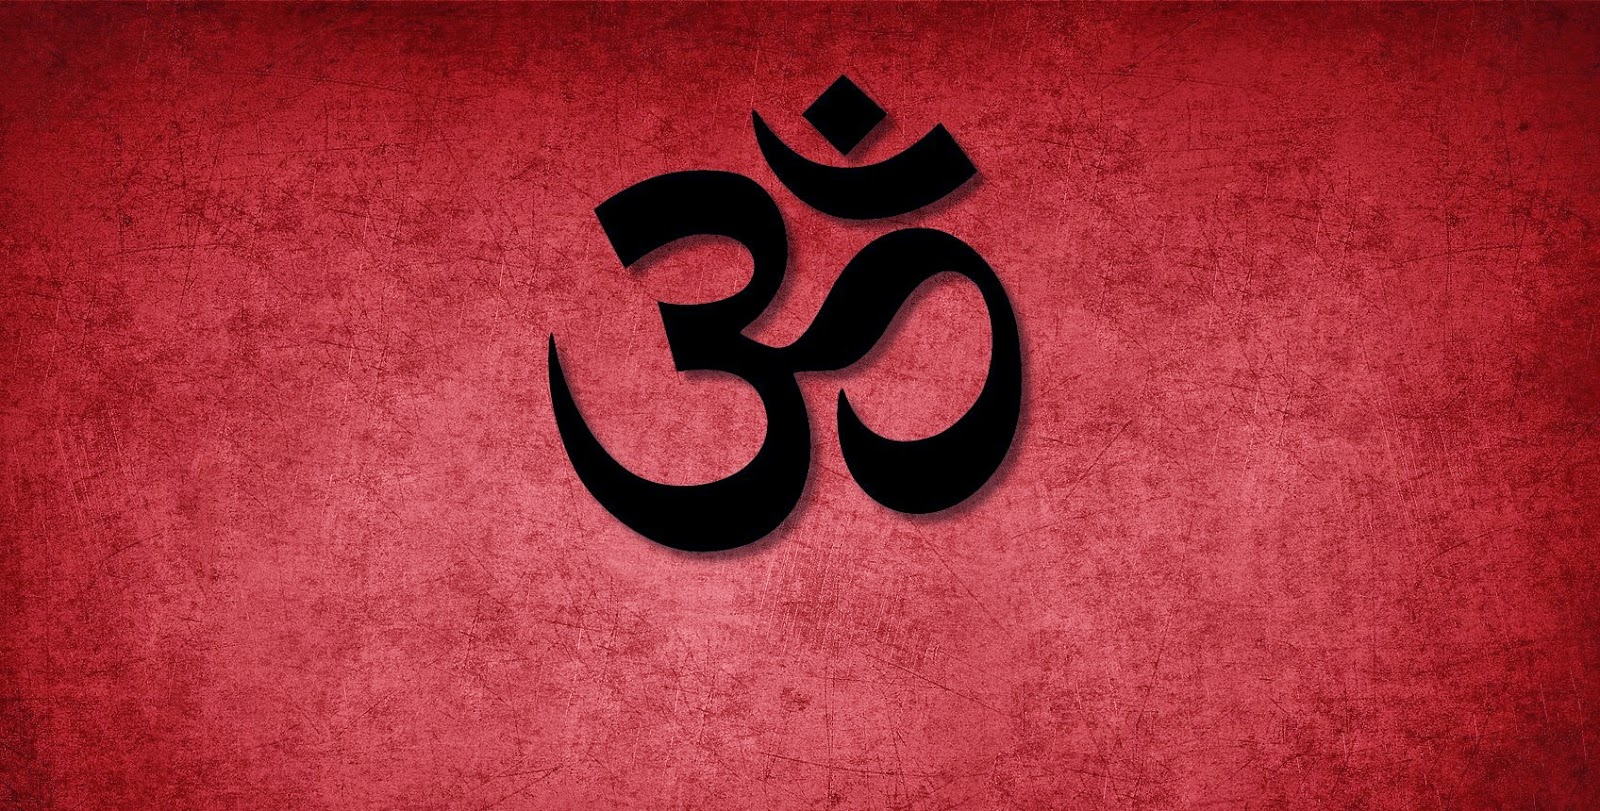 om wallpapers for mobile - photo #14